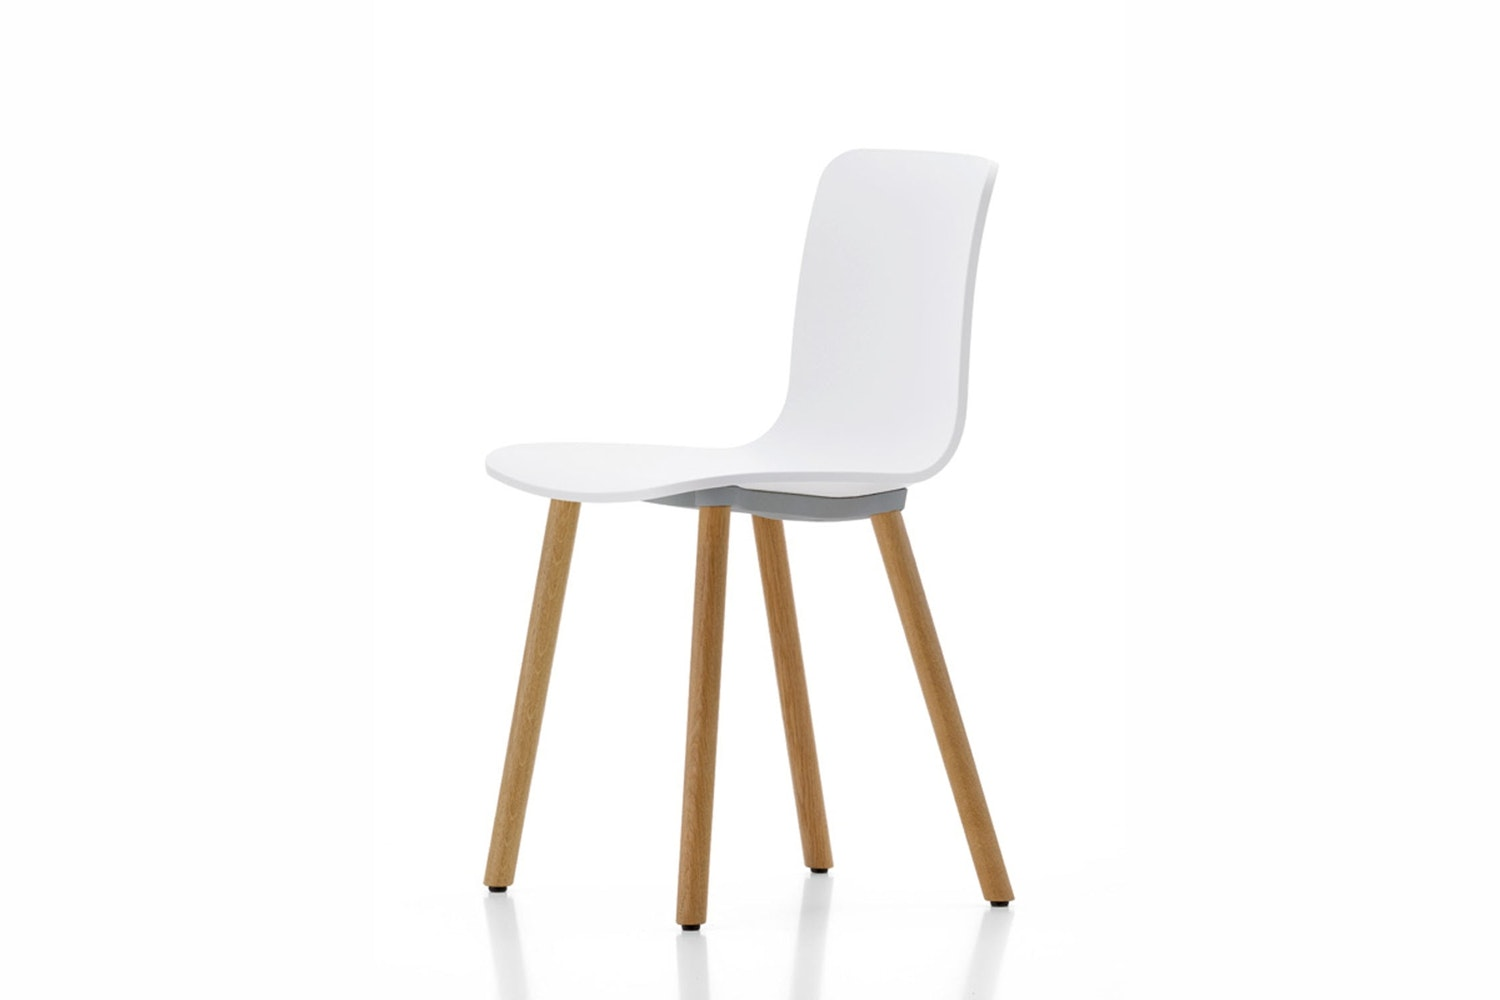 HAL Wood White Chair by Jasper Morrison for Vitra